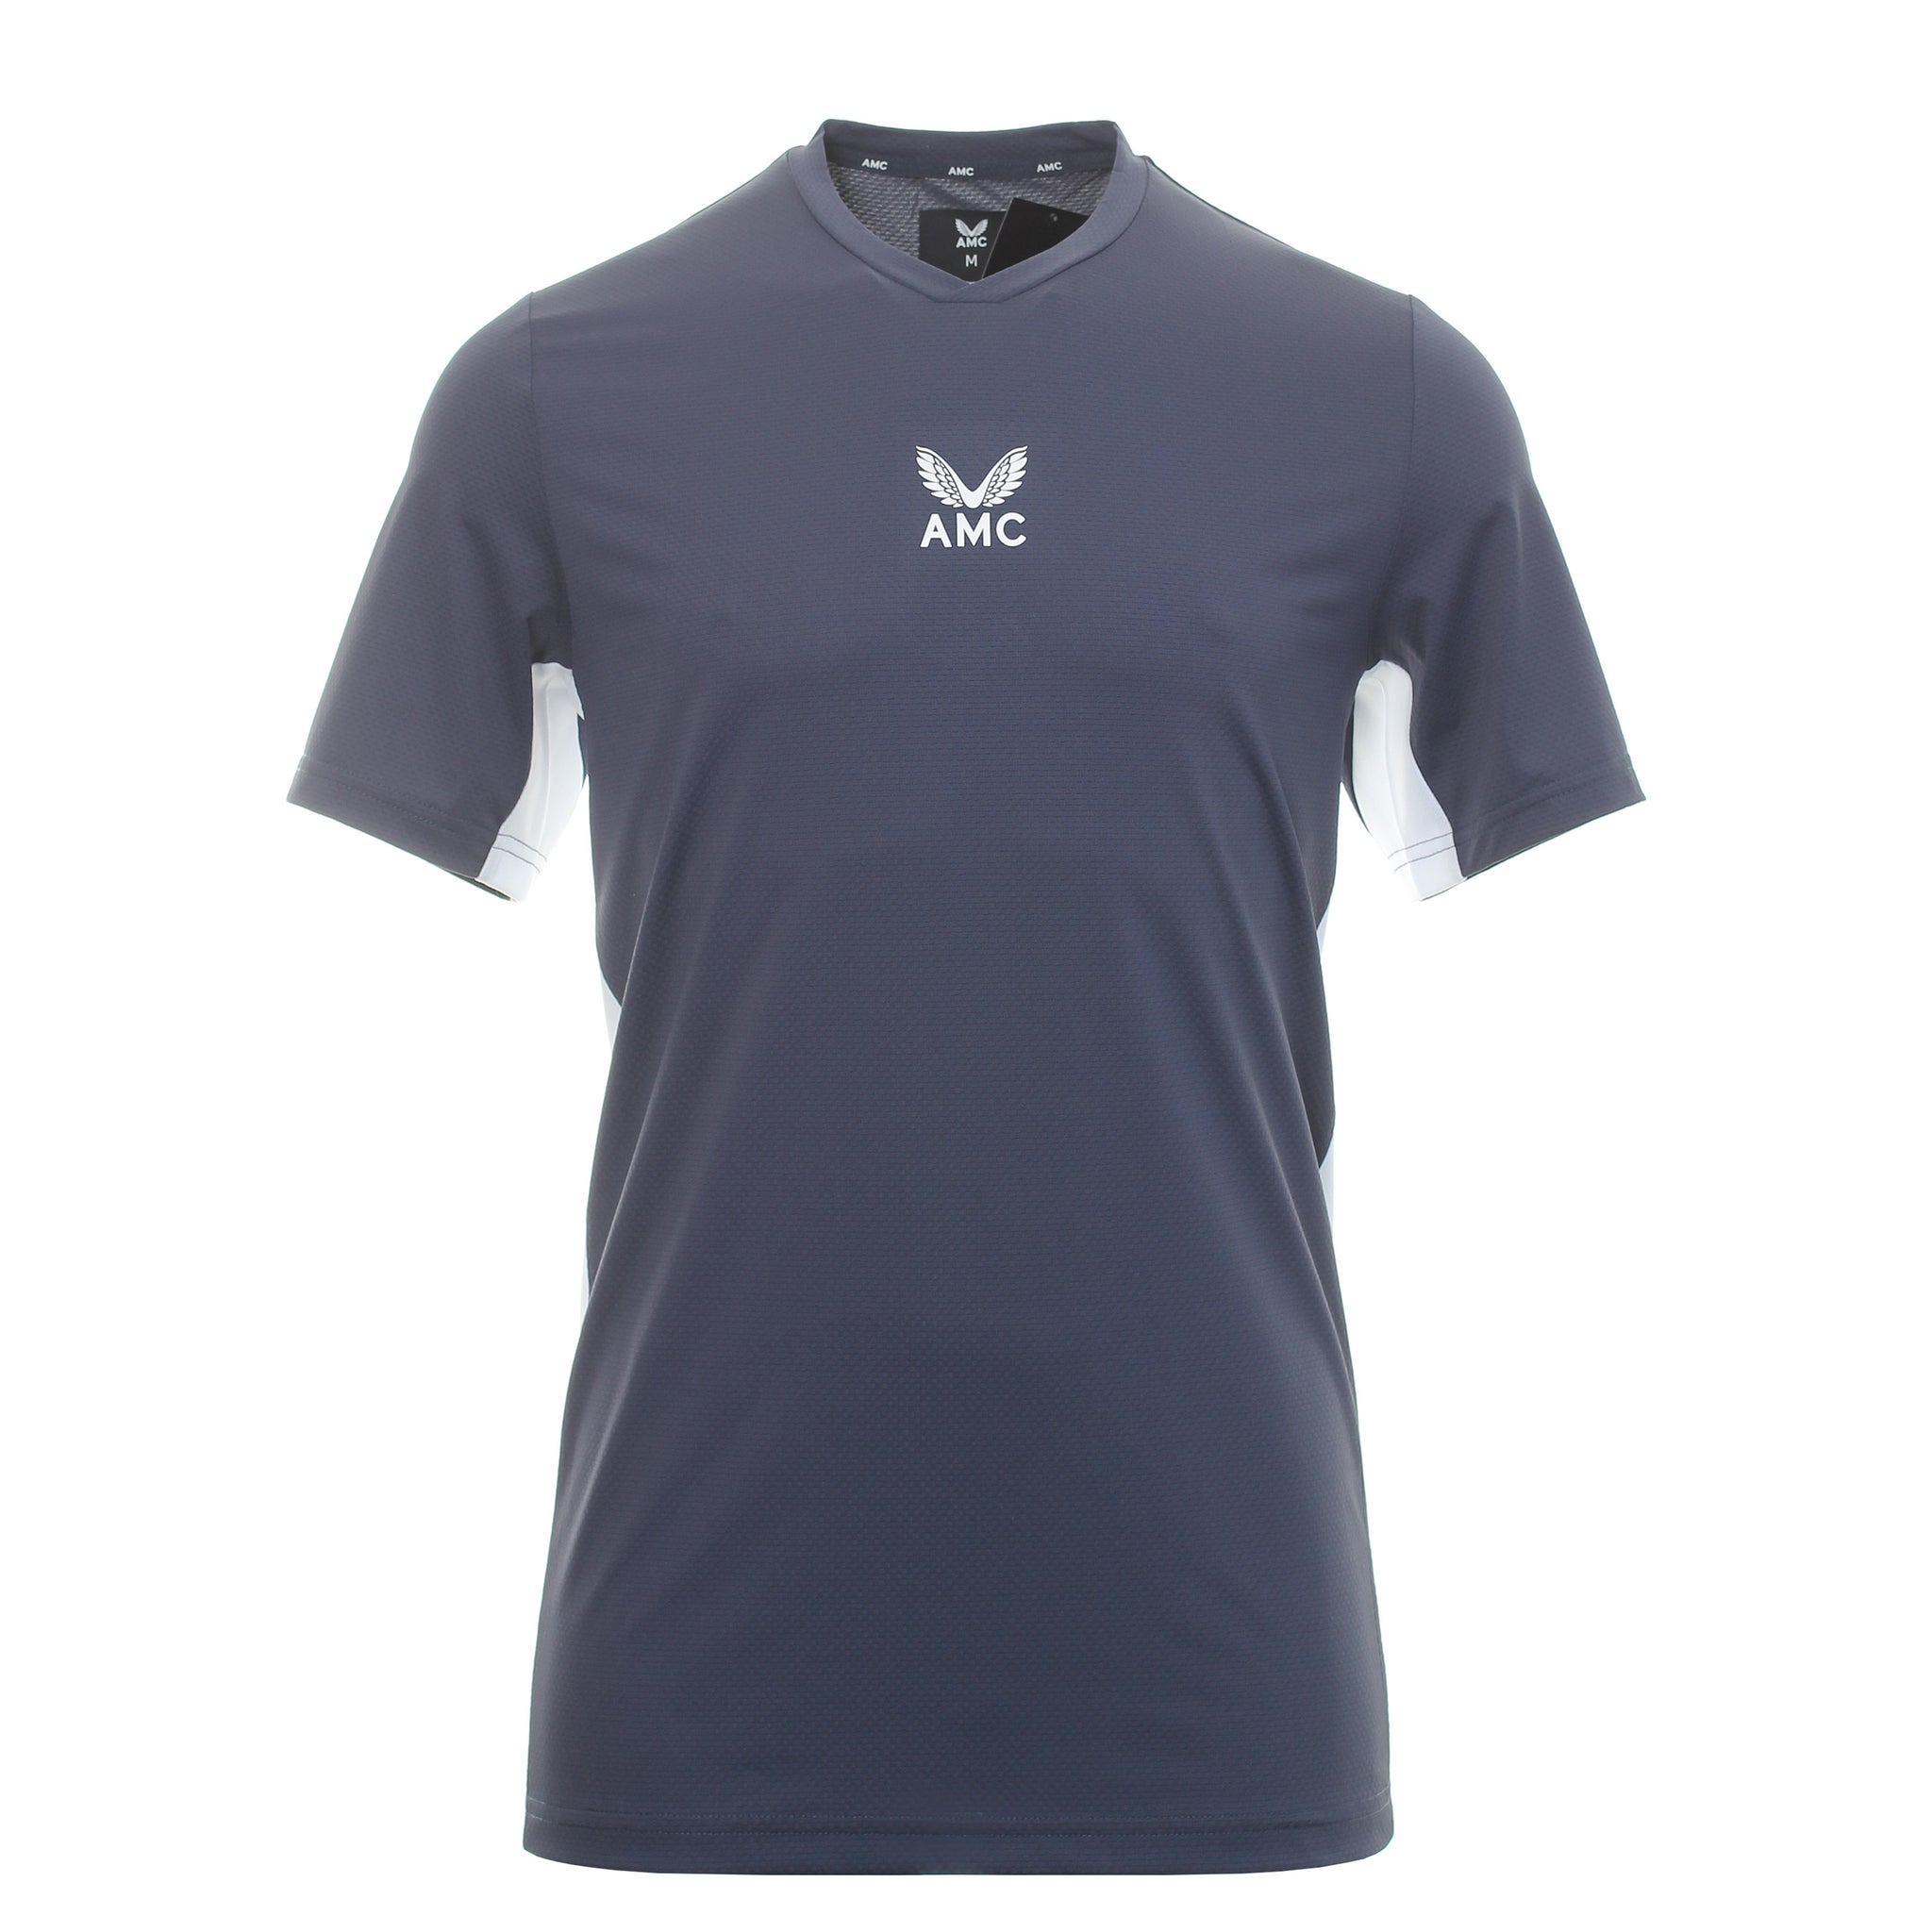 Castore AMC Performance Short Sleeve Tee 2